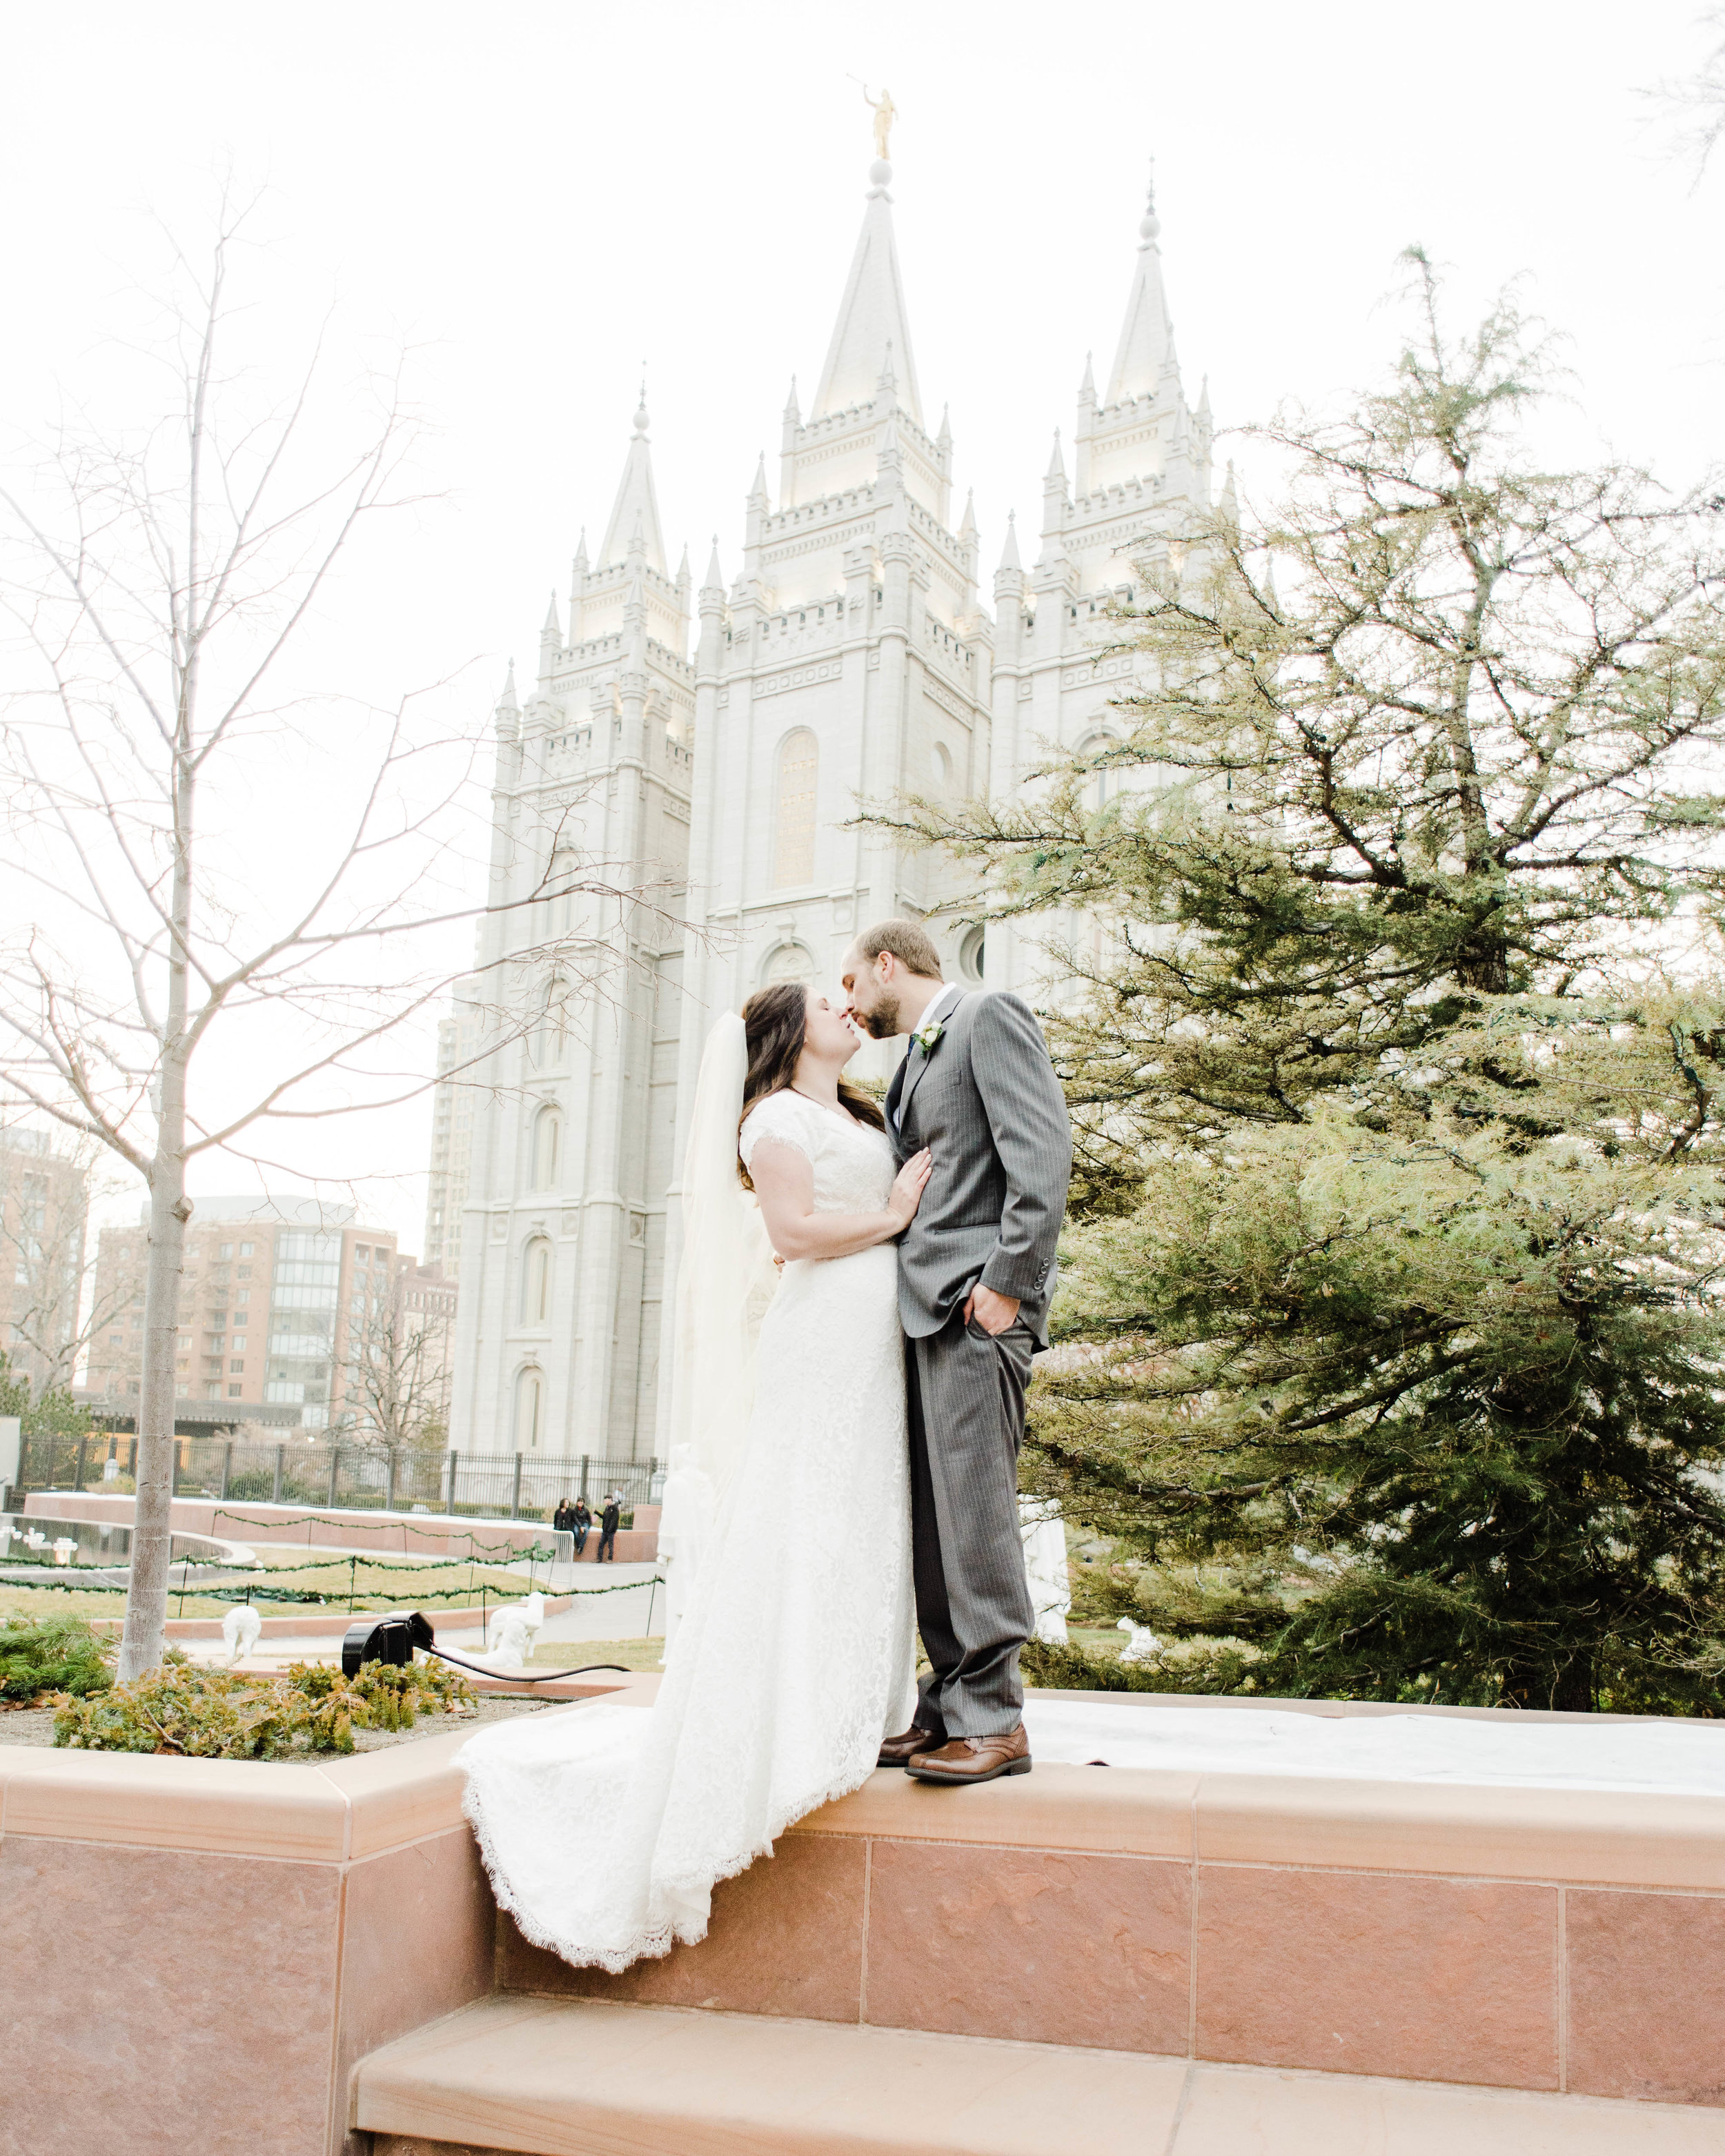 LINDSAY+BRAD-BRIDALS-Sadie_Banks_Photography-188.jpg